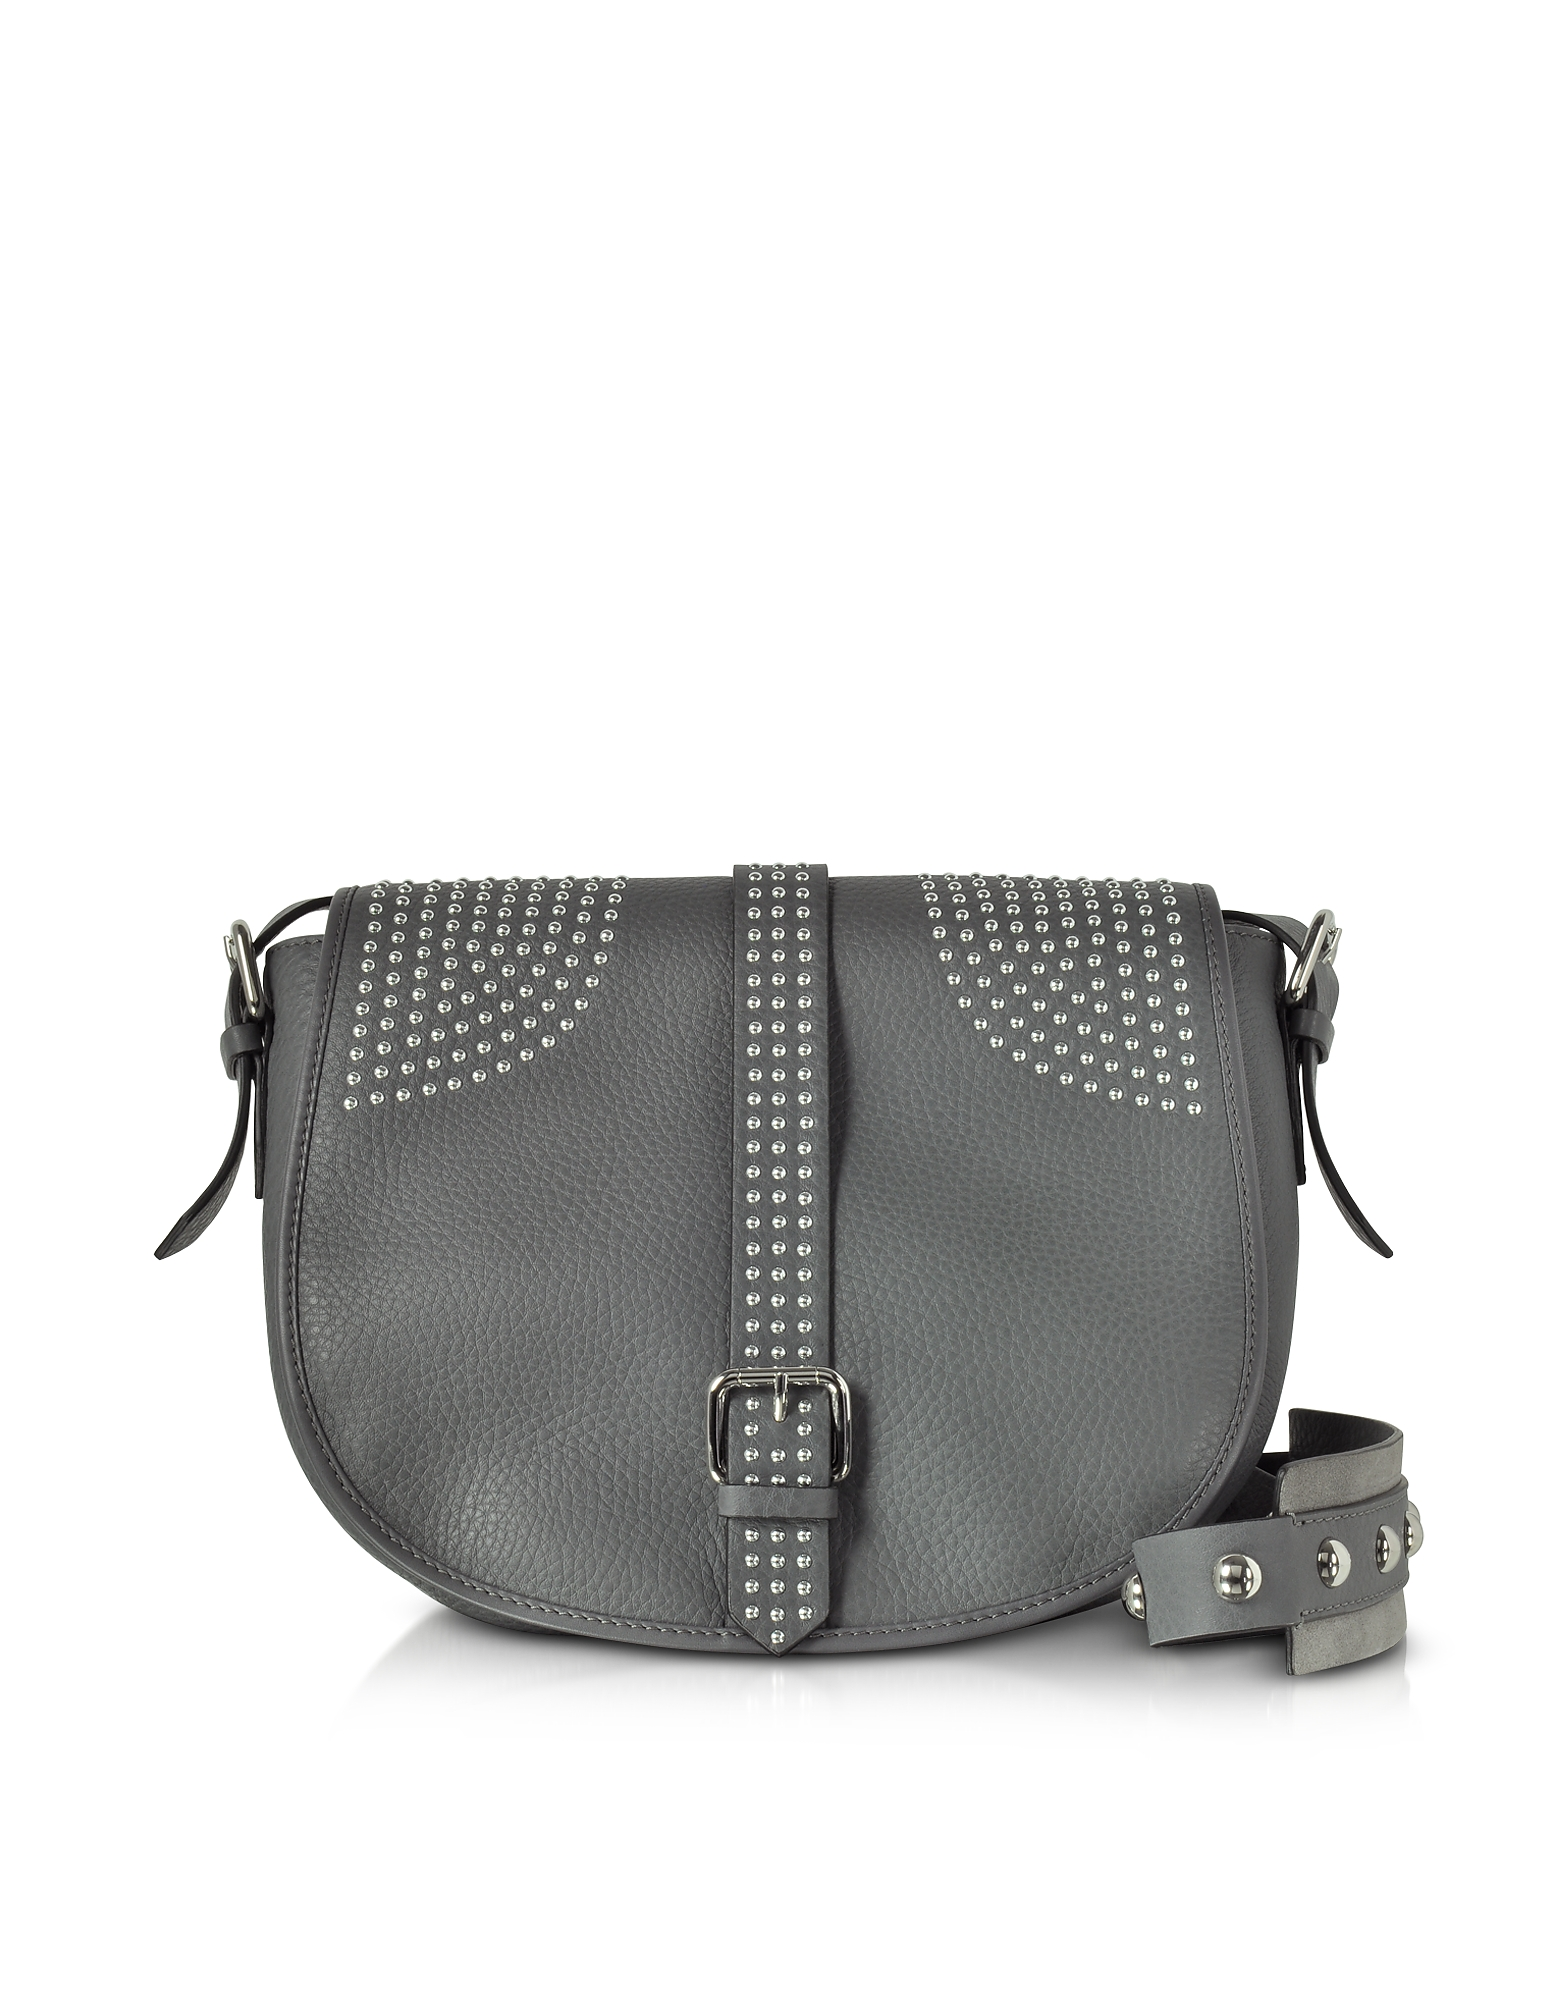 RED Valentino Anthracite Grained Leather Shoulder Bag w Studs 3fb5ac45b8701